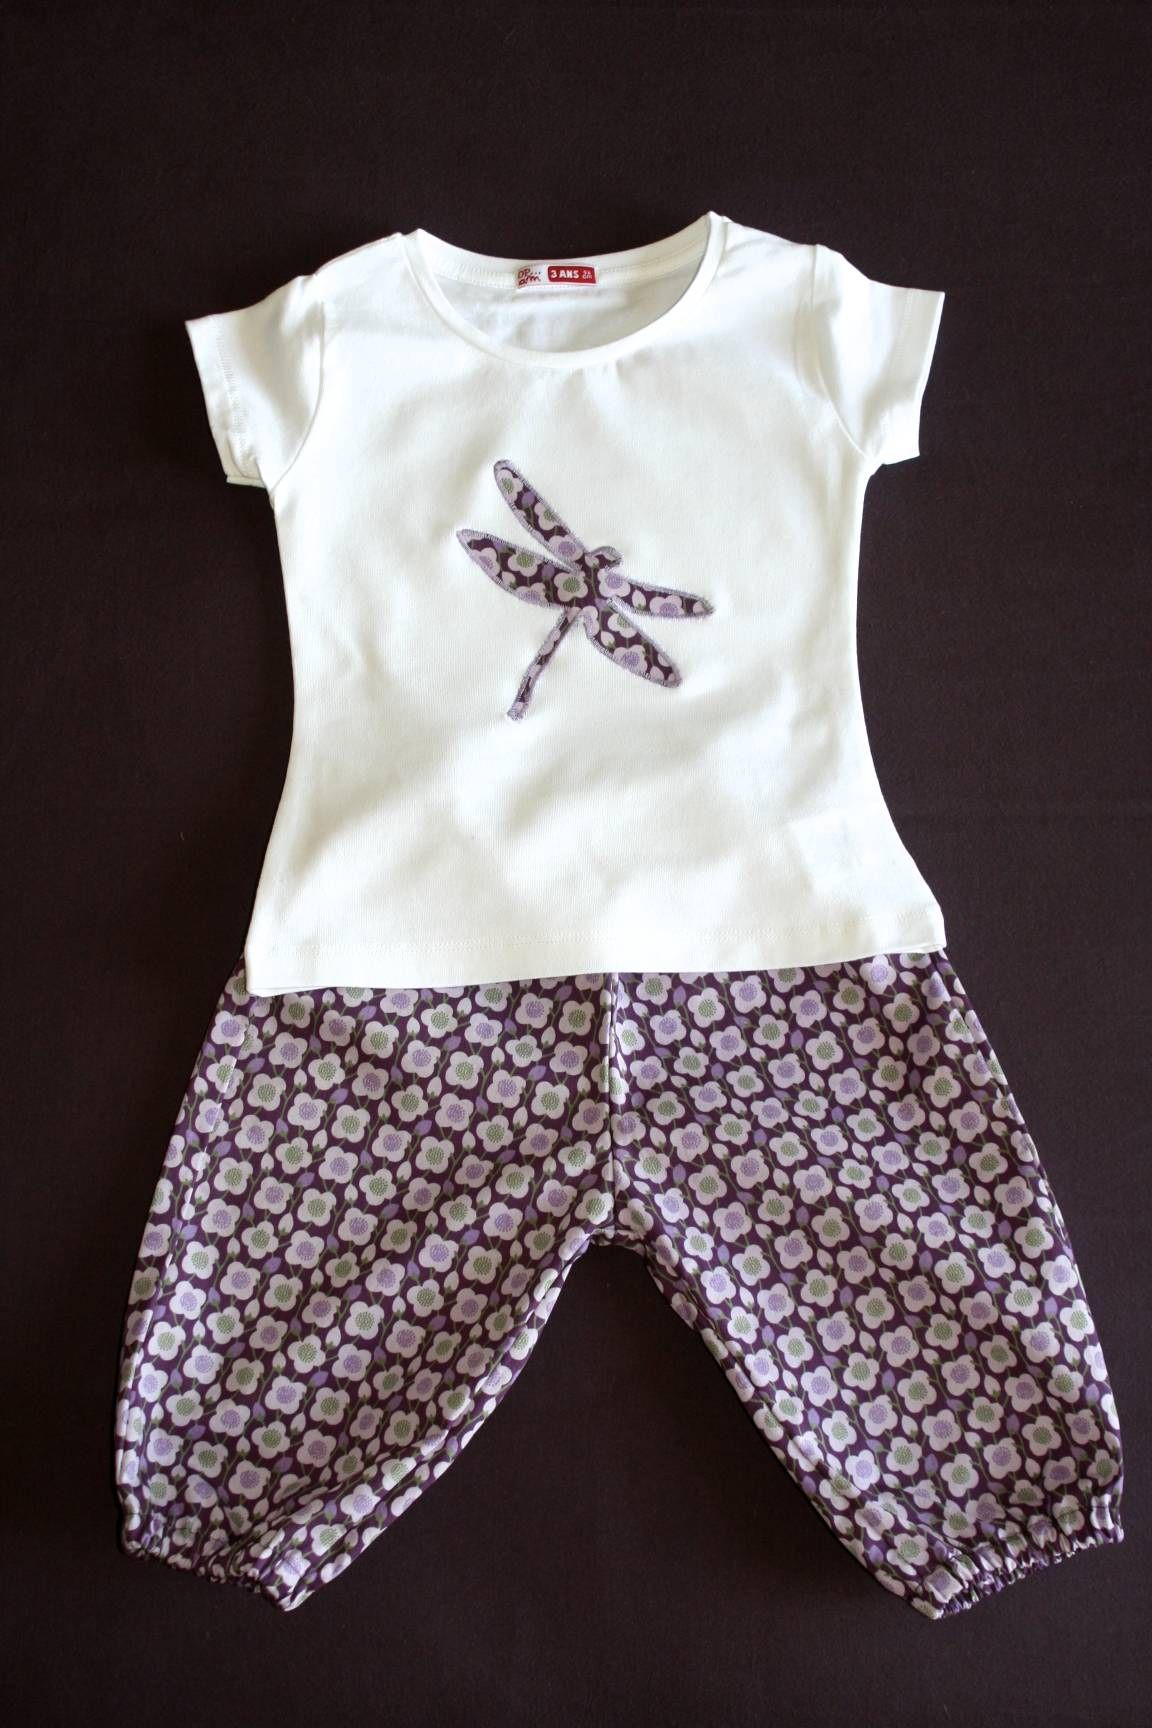 Souvent pyjama fille libellule | Inspirations couture fille | Pinterest  WS75